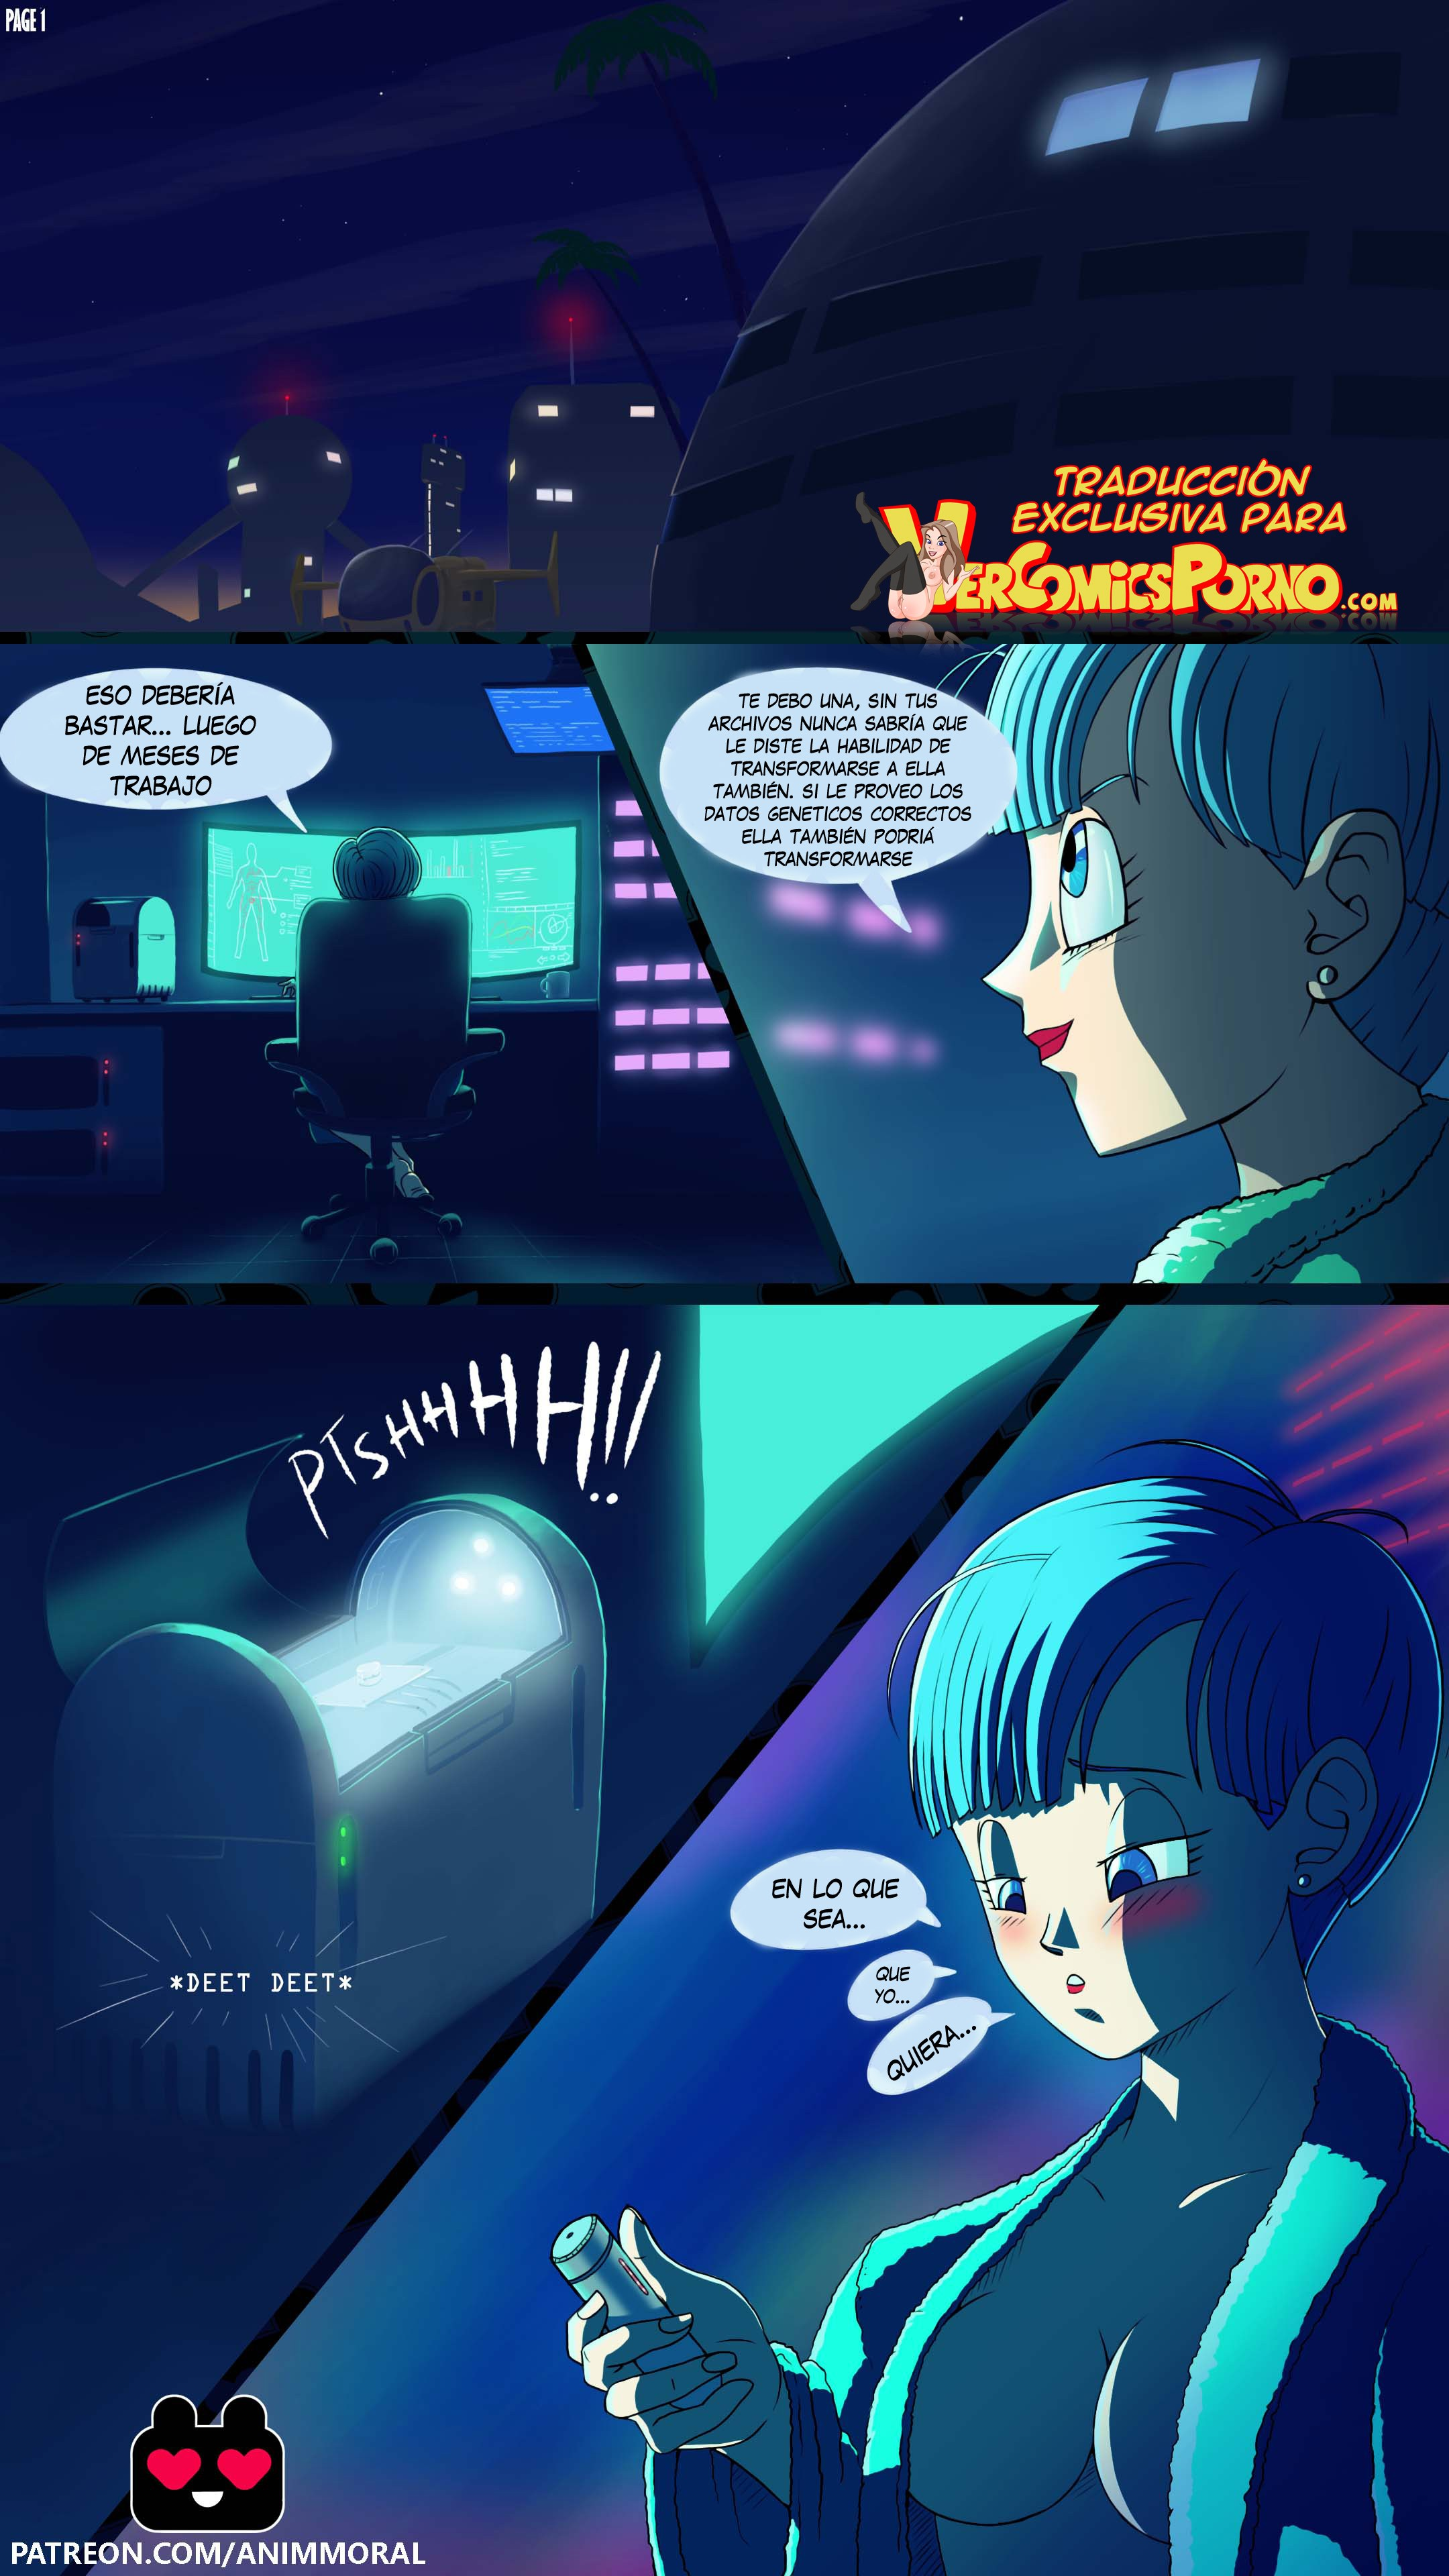 Androide 18 x Bulma: Chapter 1 - Page 1